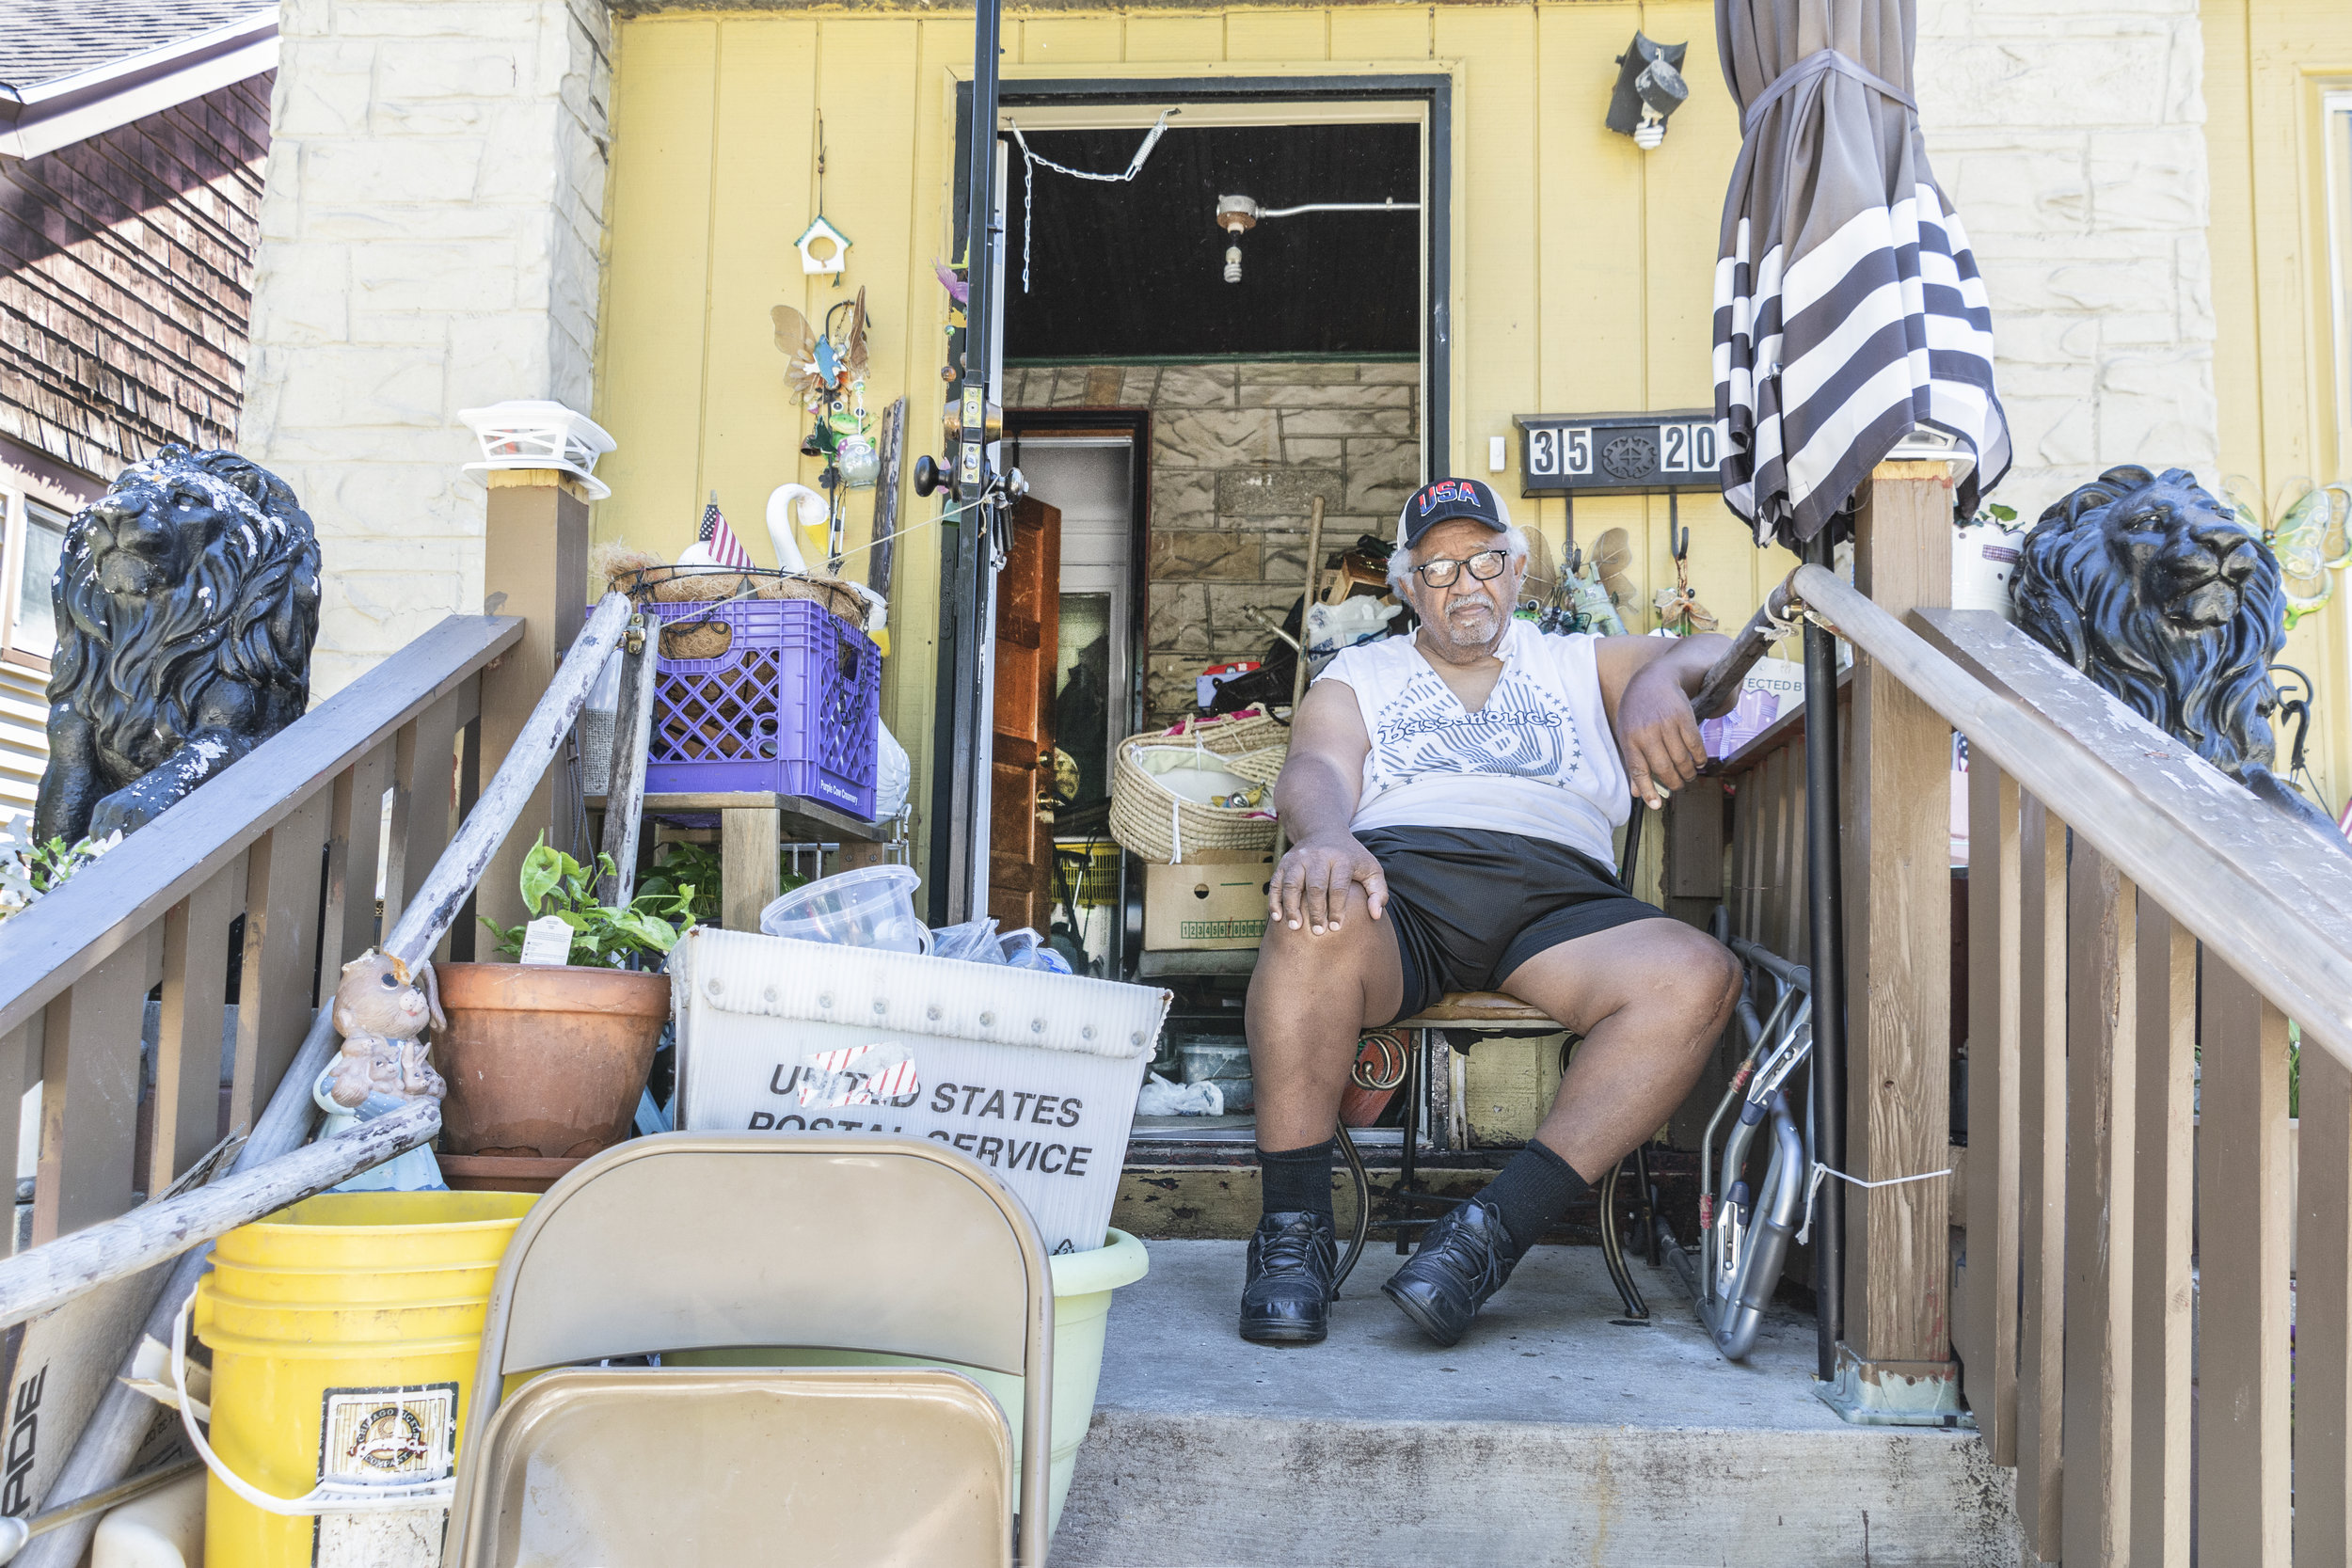 """Clifford Ray is retired from his 28 year job at General Electric. He is also a hoarder. A resident of inner city Milwaukee, he has lived in this same house for over 30 years. I asked him if he'd seen changes in his neighborhood. """"Big changes,"""" he said. """"No gangs back then. No violence. Couple months ago, a guy got murdered just up the street. It's dangerous here."""""""